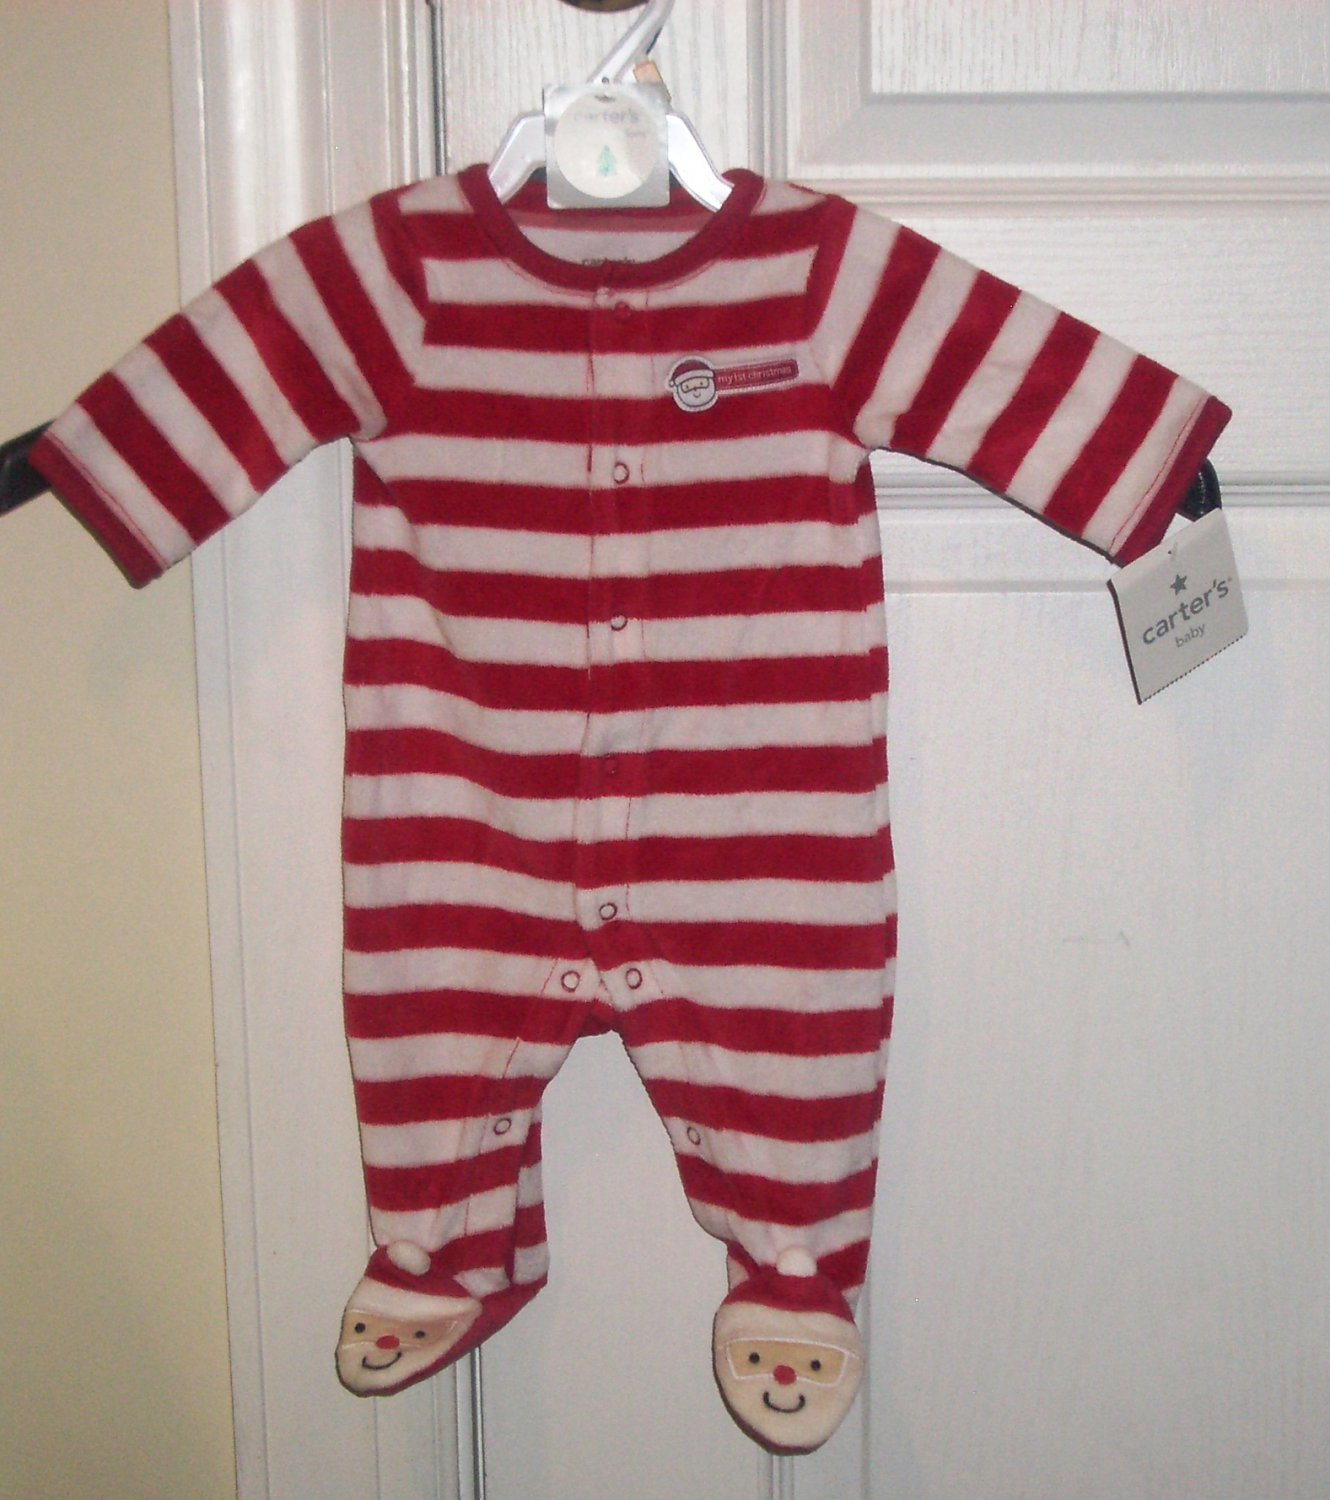 "Your baby can join in on the fun festivities of the holiday with this cute set. It's made of pure cotton so baby stays cozy and boasts the words ""My First Christmas"" on the behind."